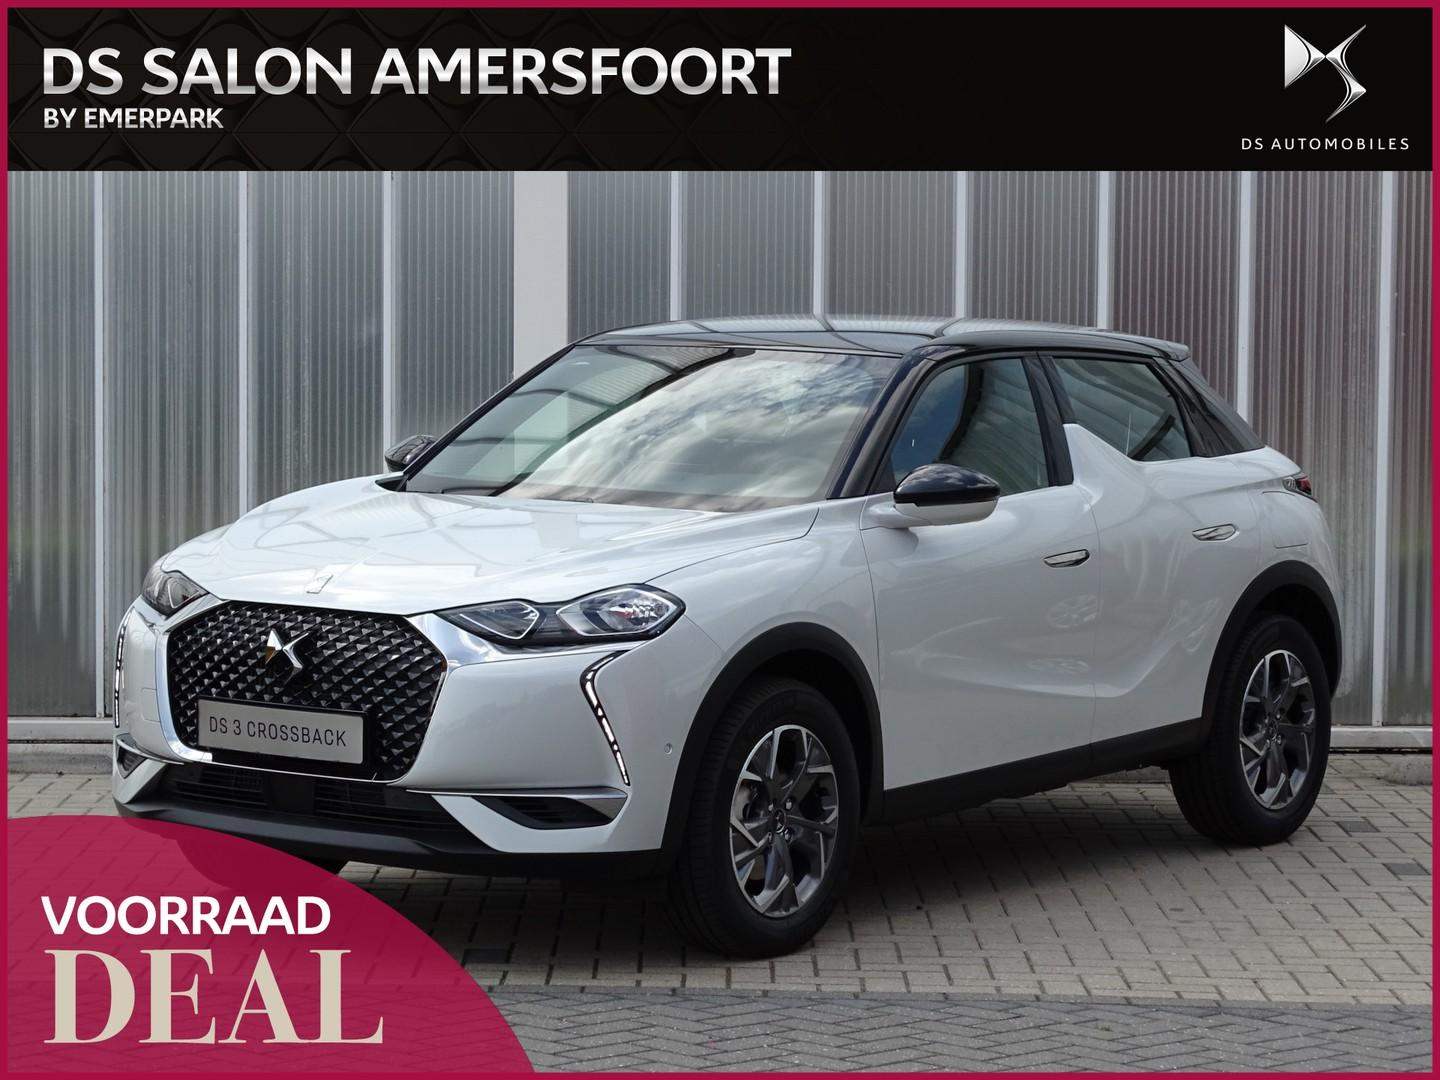 Ds Ds 3 Crossback 1.2 puretech automaat business ds connect nav dab+